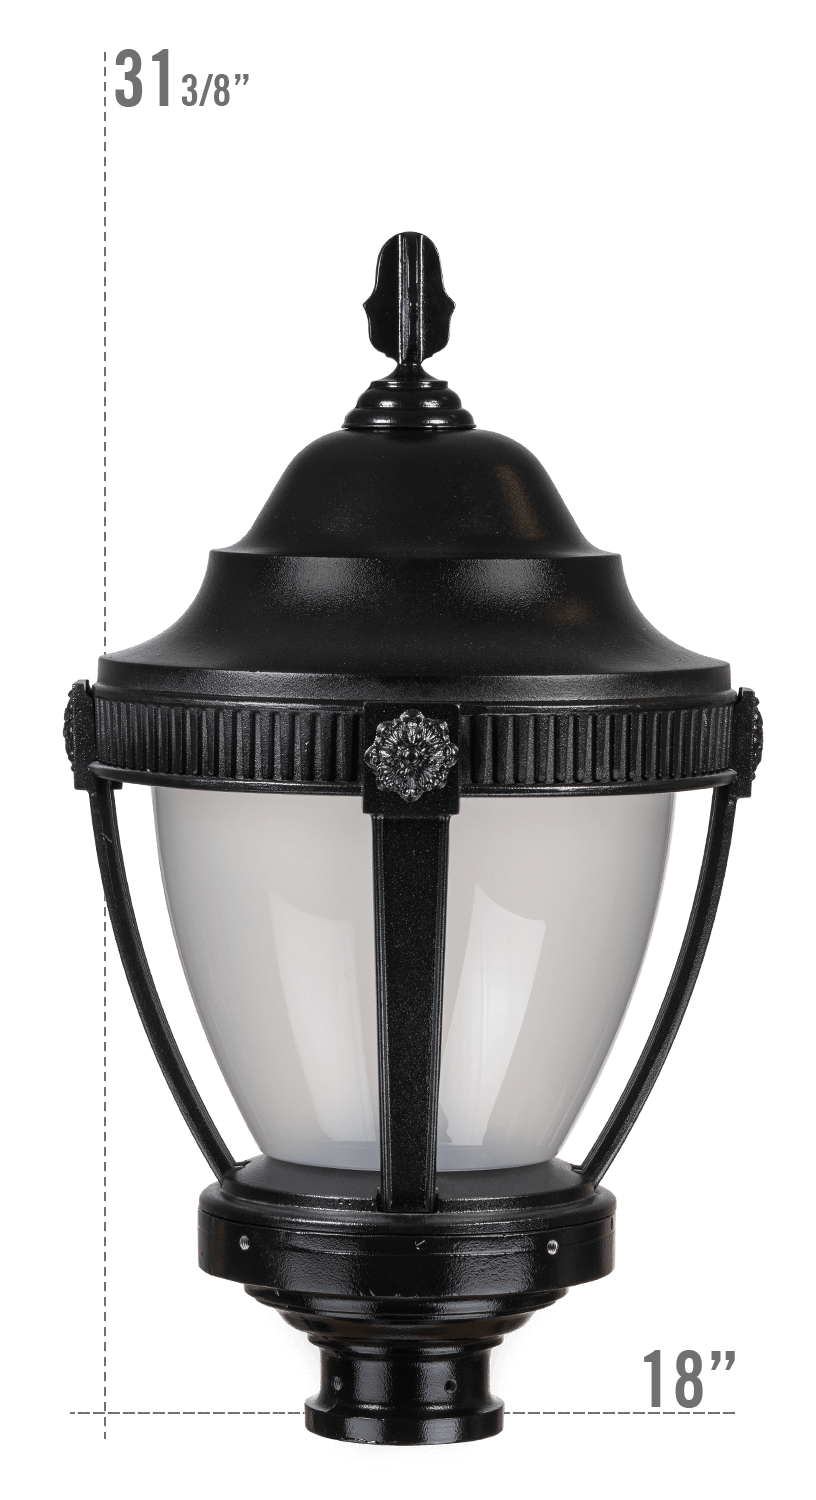 AUGUSTA LED LUMINAIRE WITH DUNMORE FITTER FROSTED GLOBE